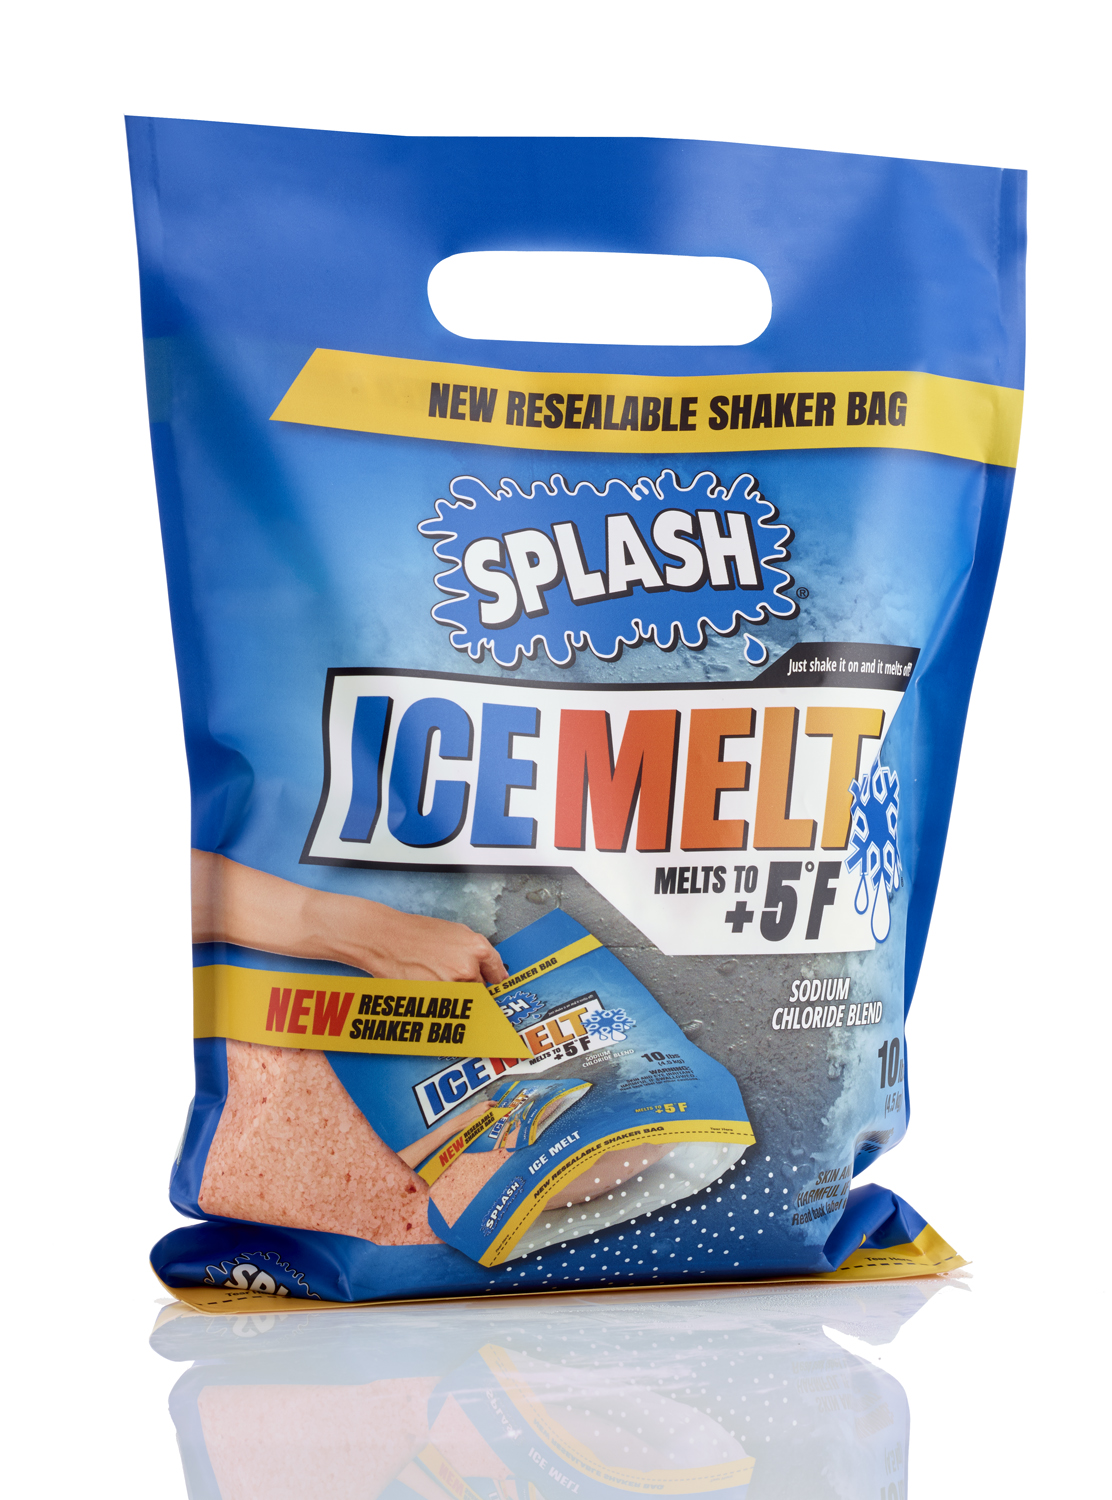 Home Depot Ice Melt Splash Ice Melt 10lb Shaker Bag Walmart Inventory